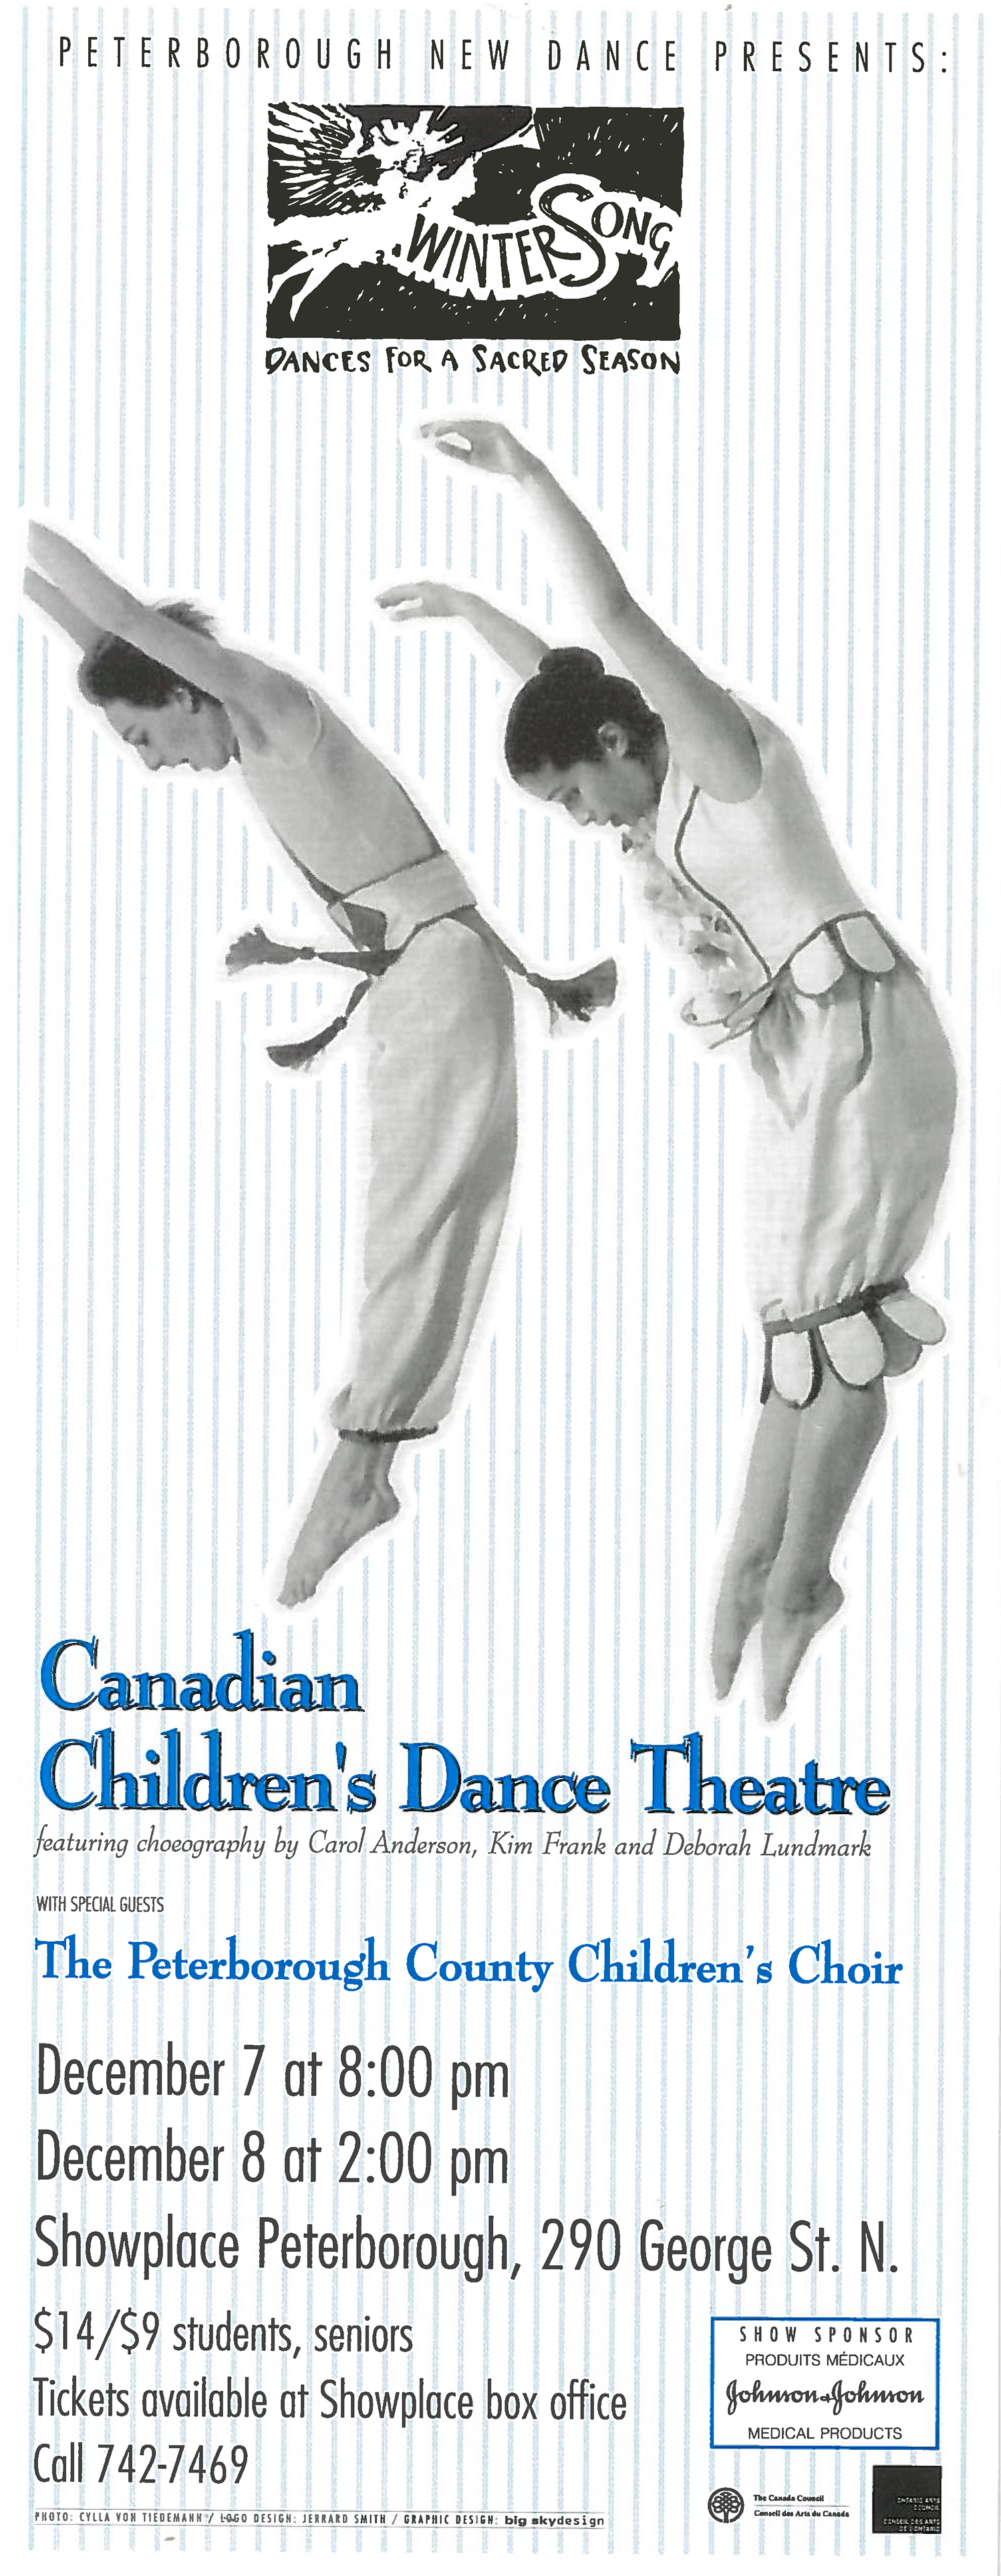 Canadian Children's Dance Theatre -Wintersong With the Peterborough County Children's Choir Poster for Canadian Children's Dance Theatre in the photo.